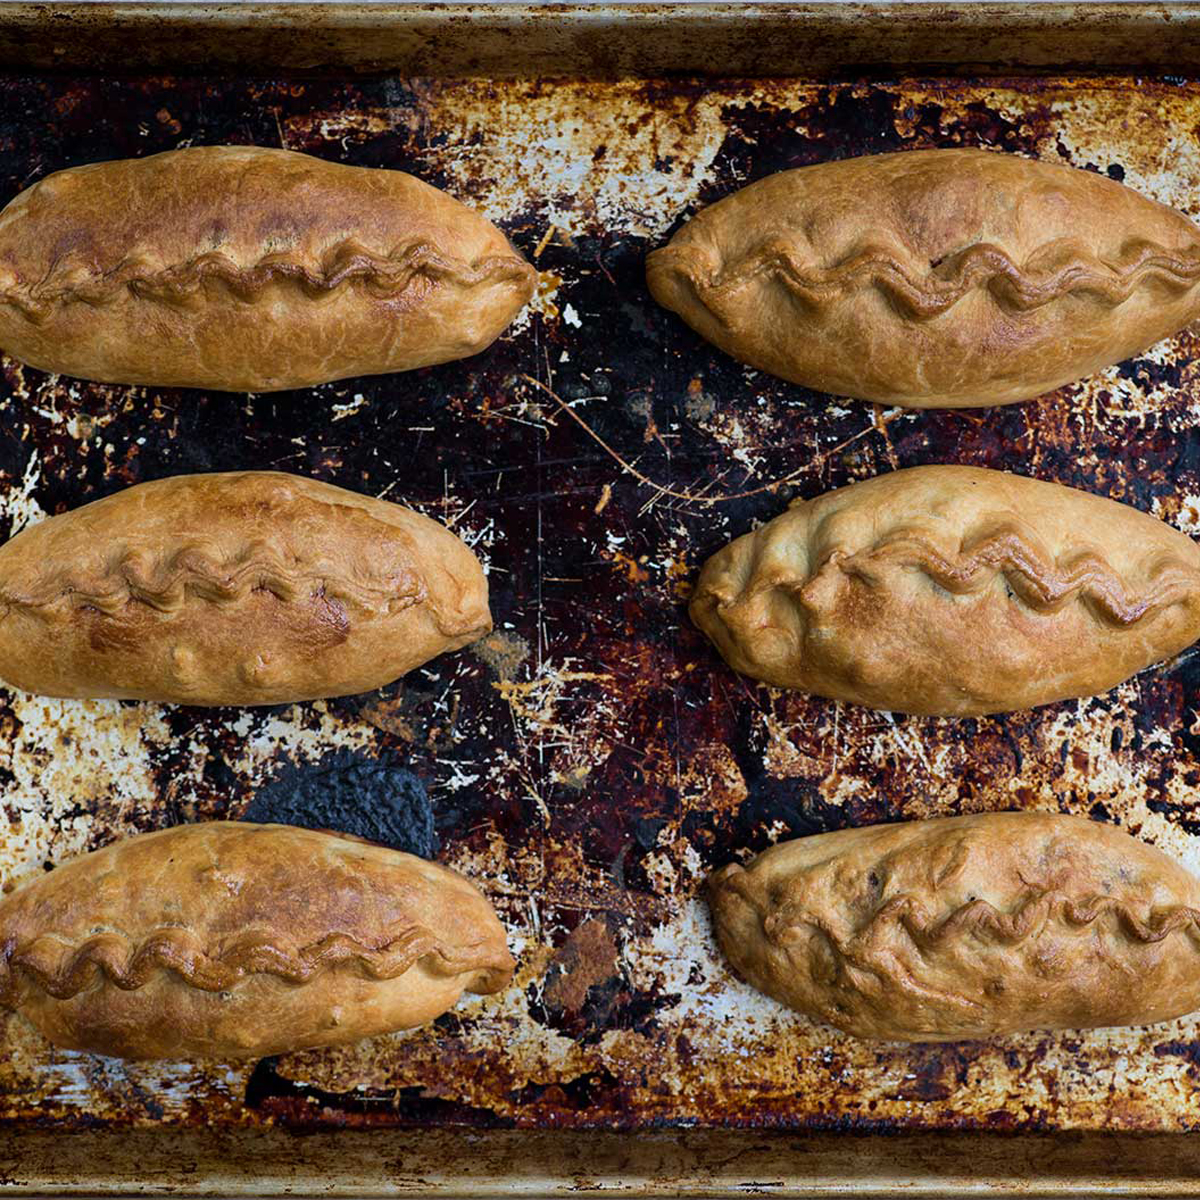 Baked golden brown - about an hour at 160°C | Cornish Pasty